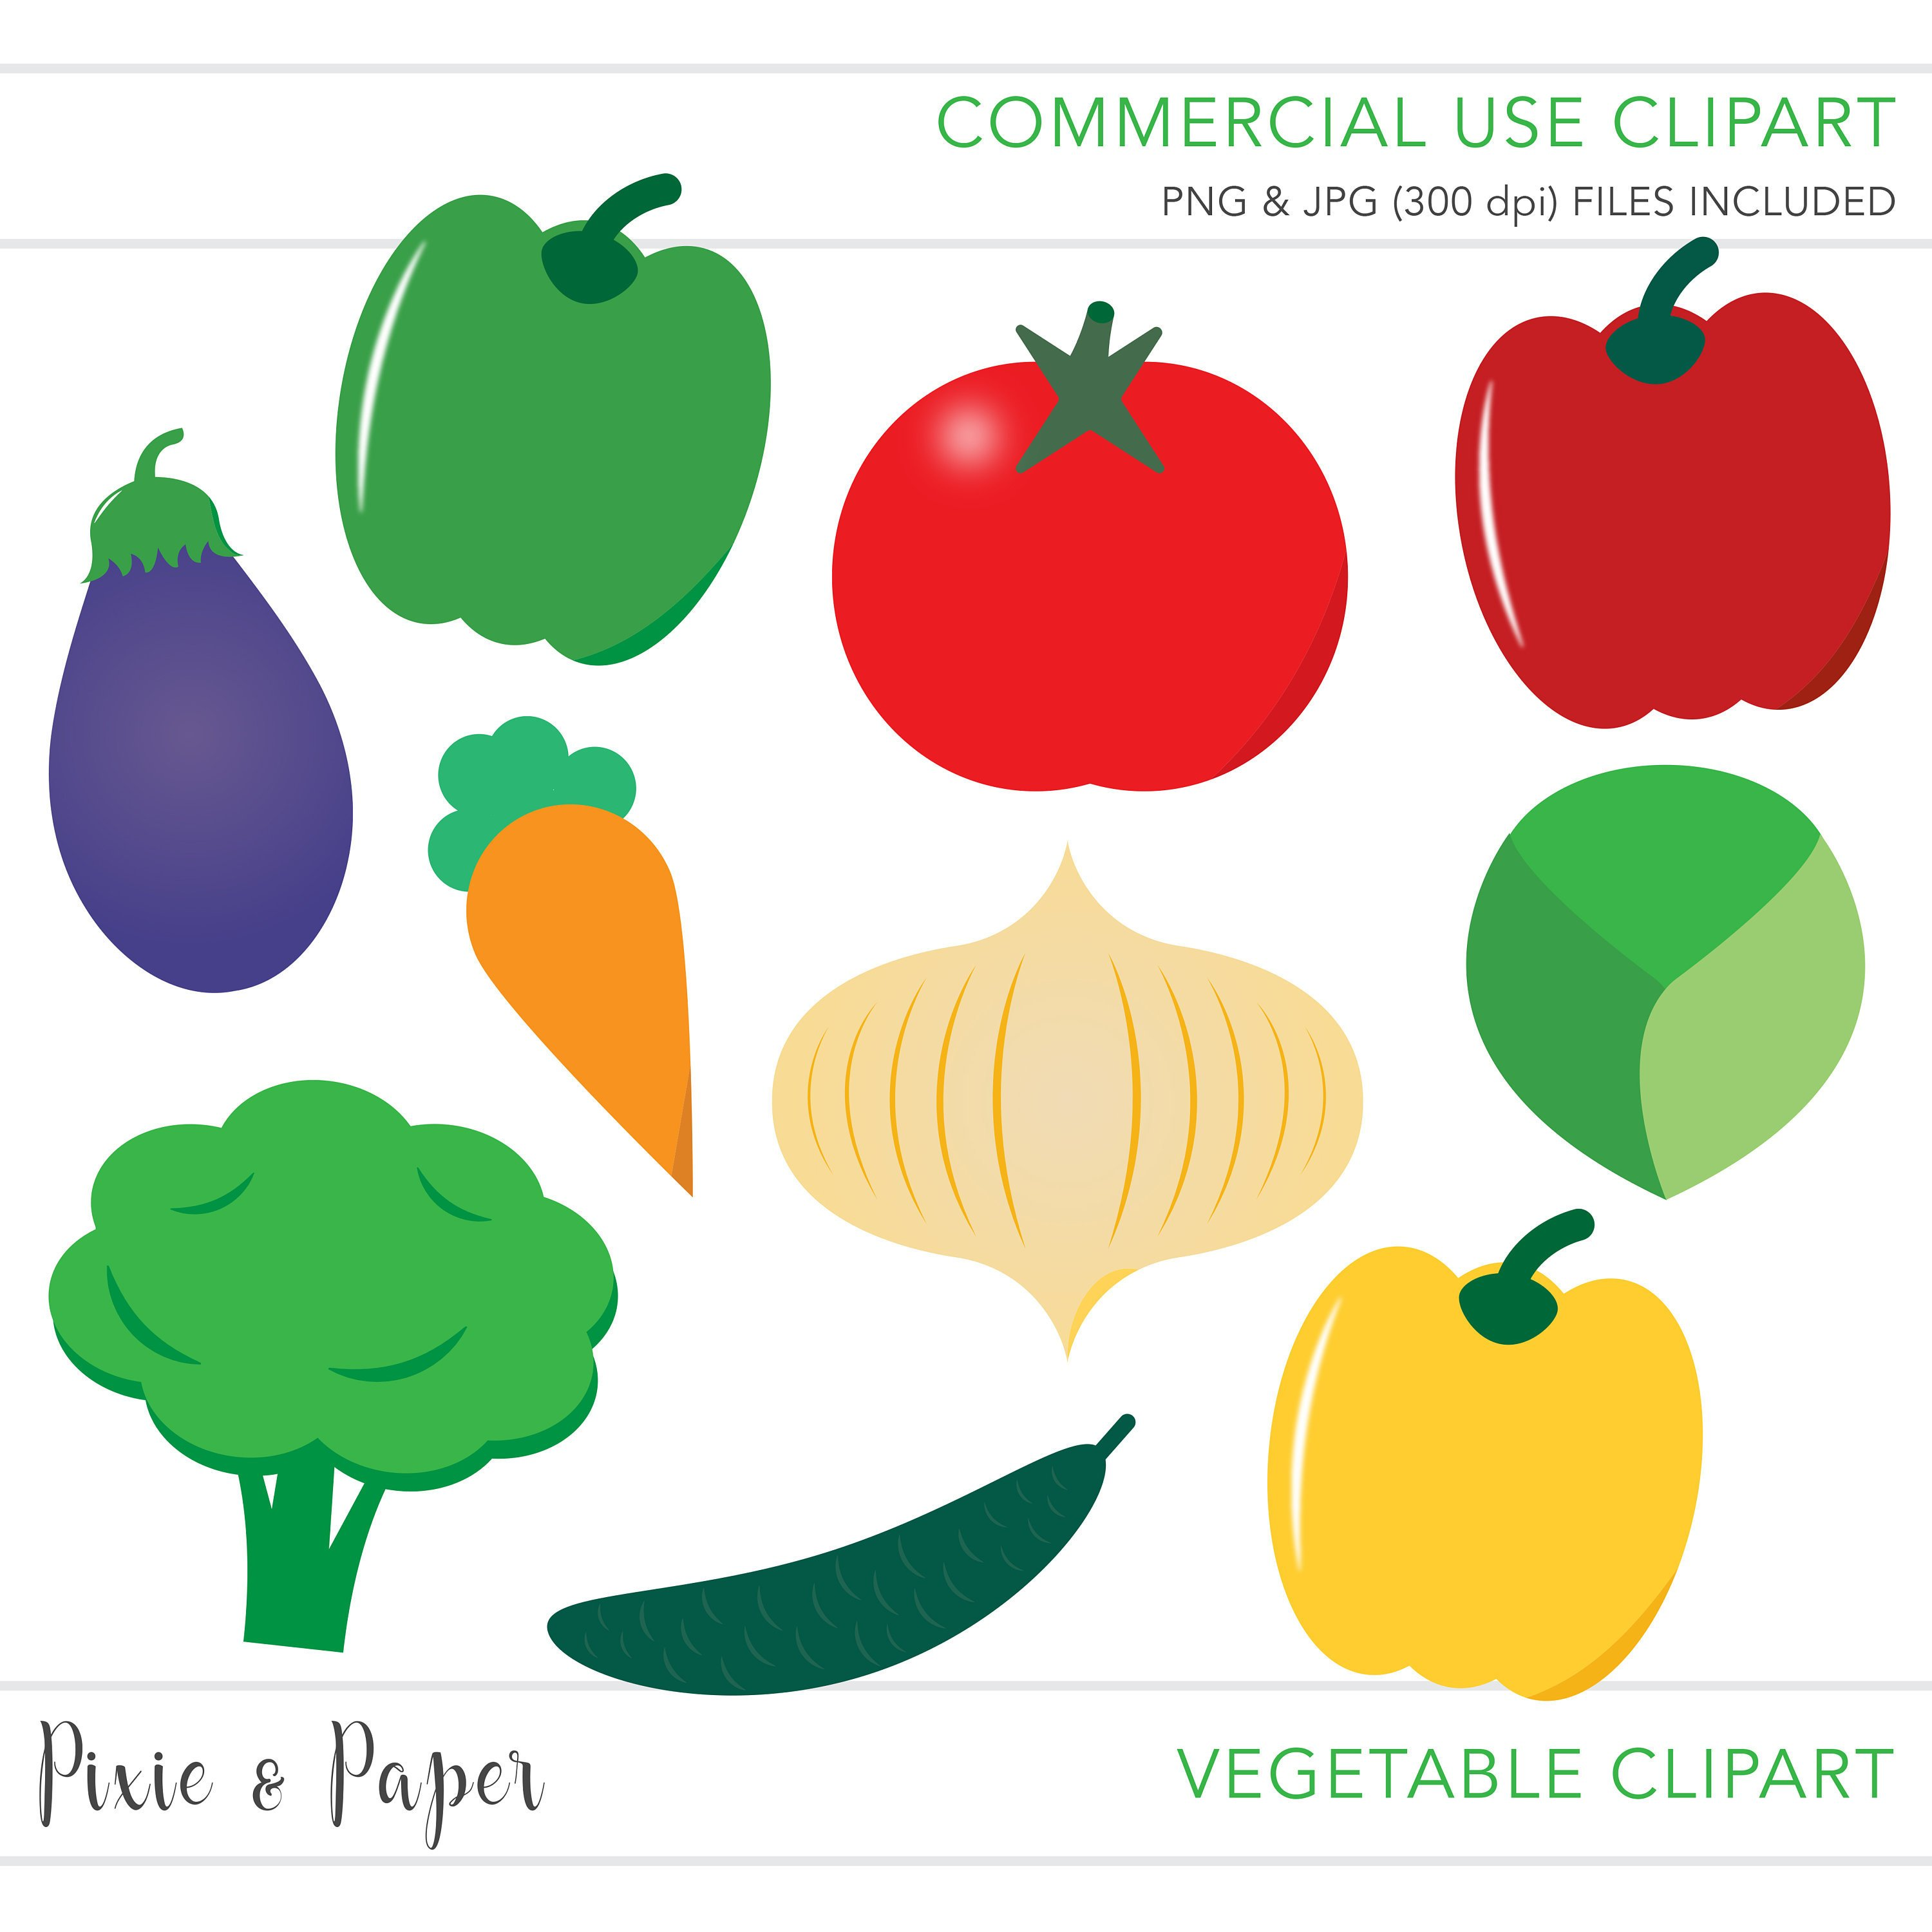 3000x3000 Commercial Use Clipart, Commercial Use Clip Art, Vegetable Clipart